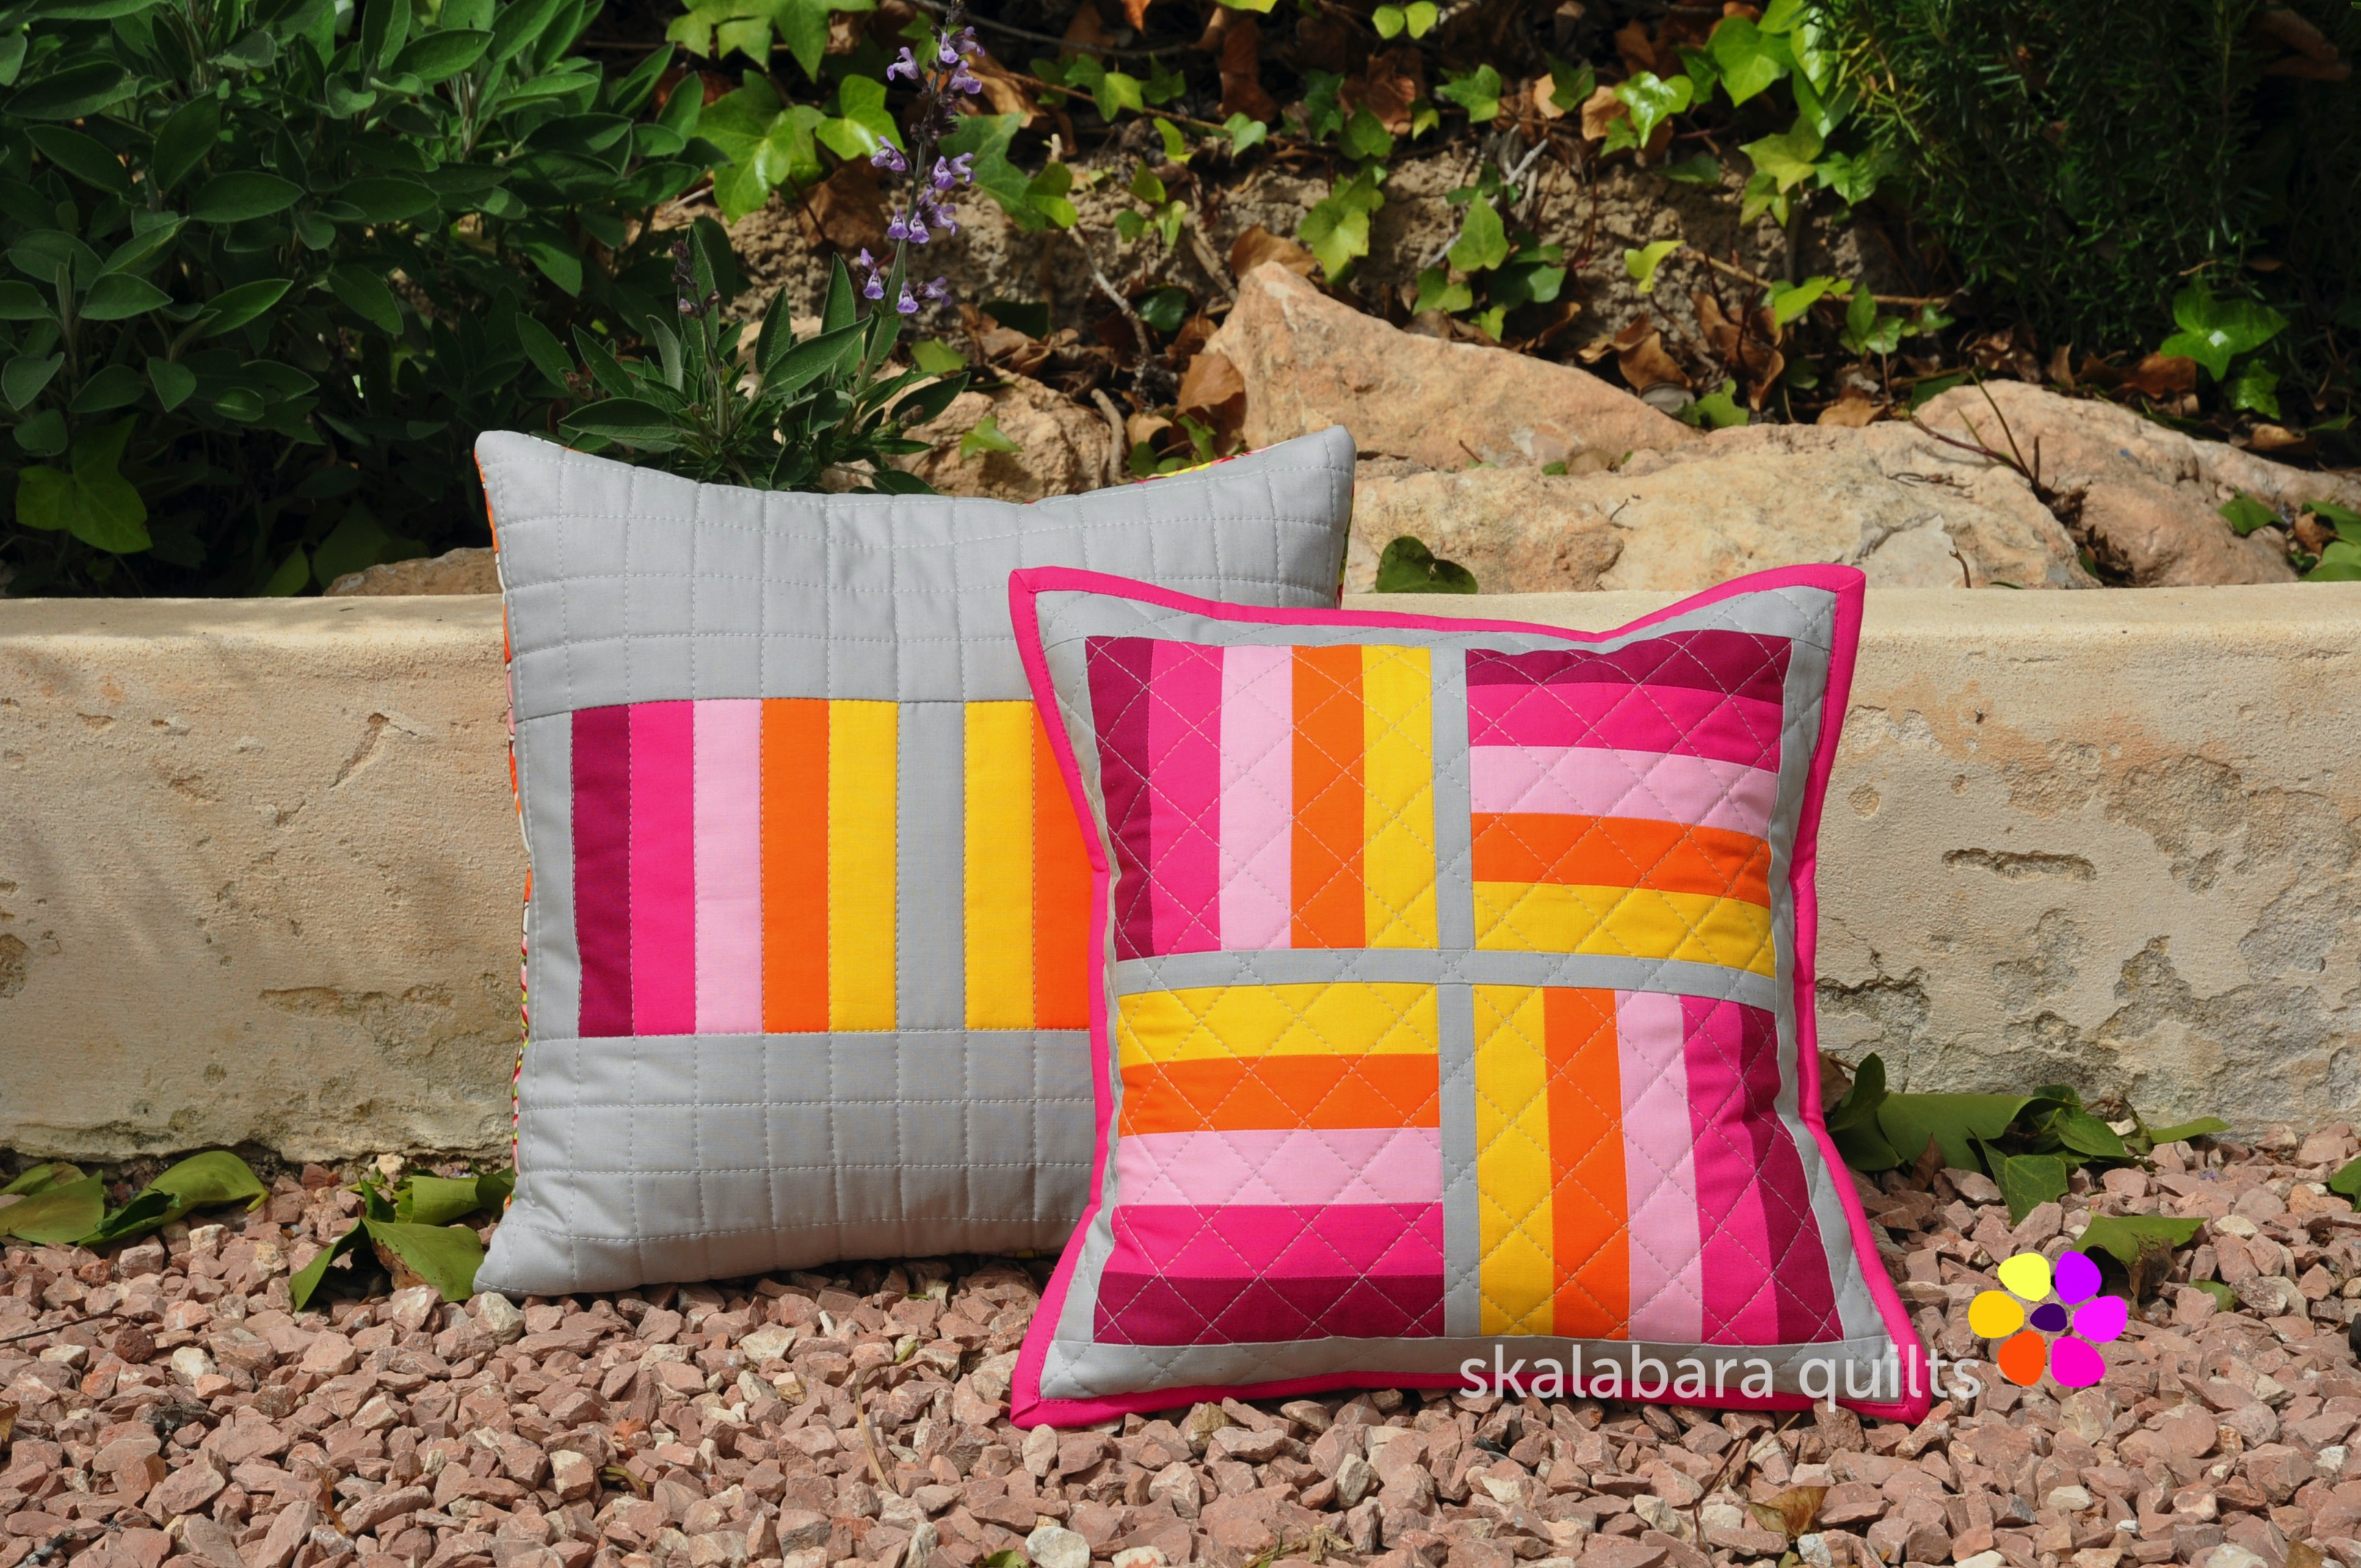 april pinkie cushions 3 - skalabara quilts